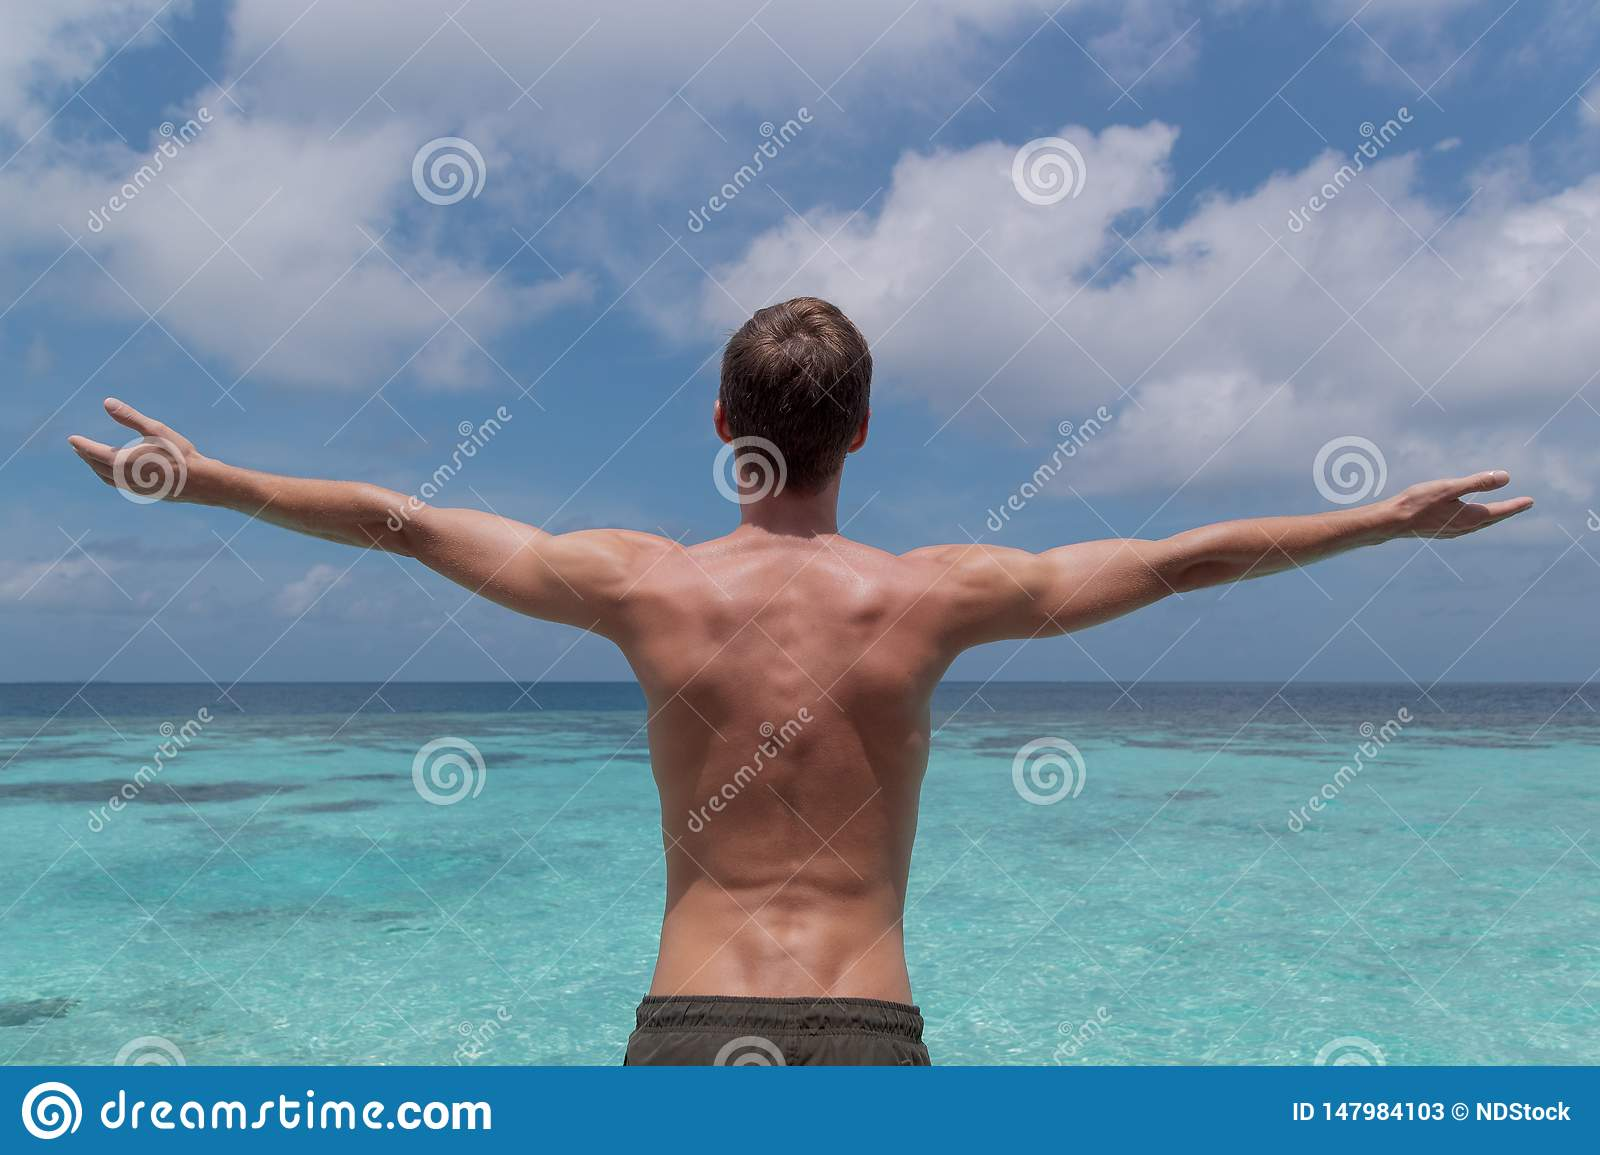 Young man with arms raised in front of clear blue water in a tropical holiday destination